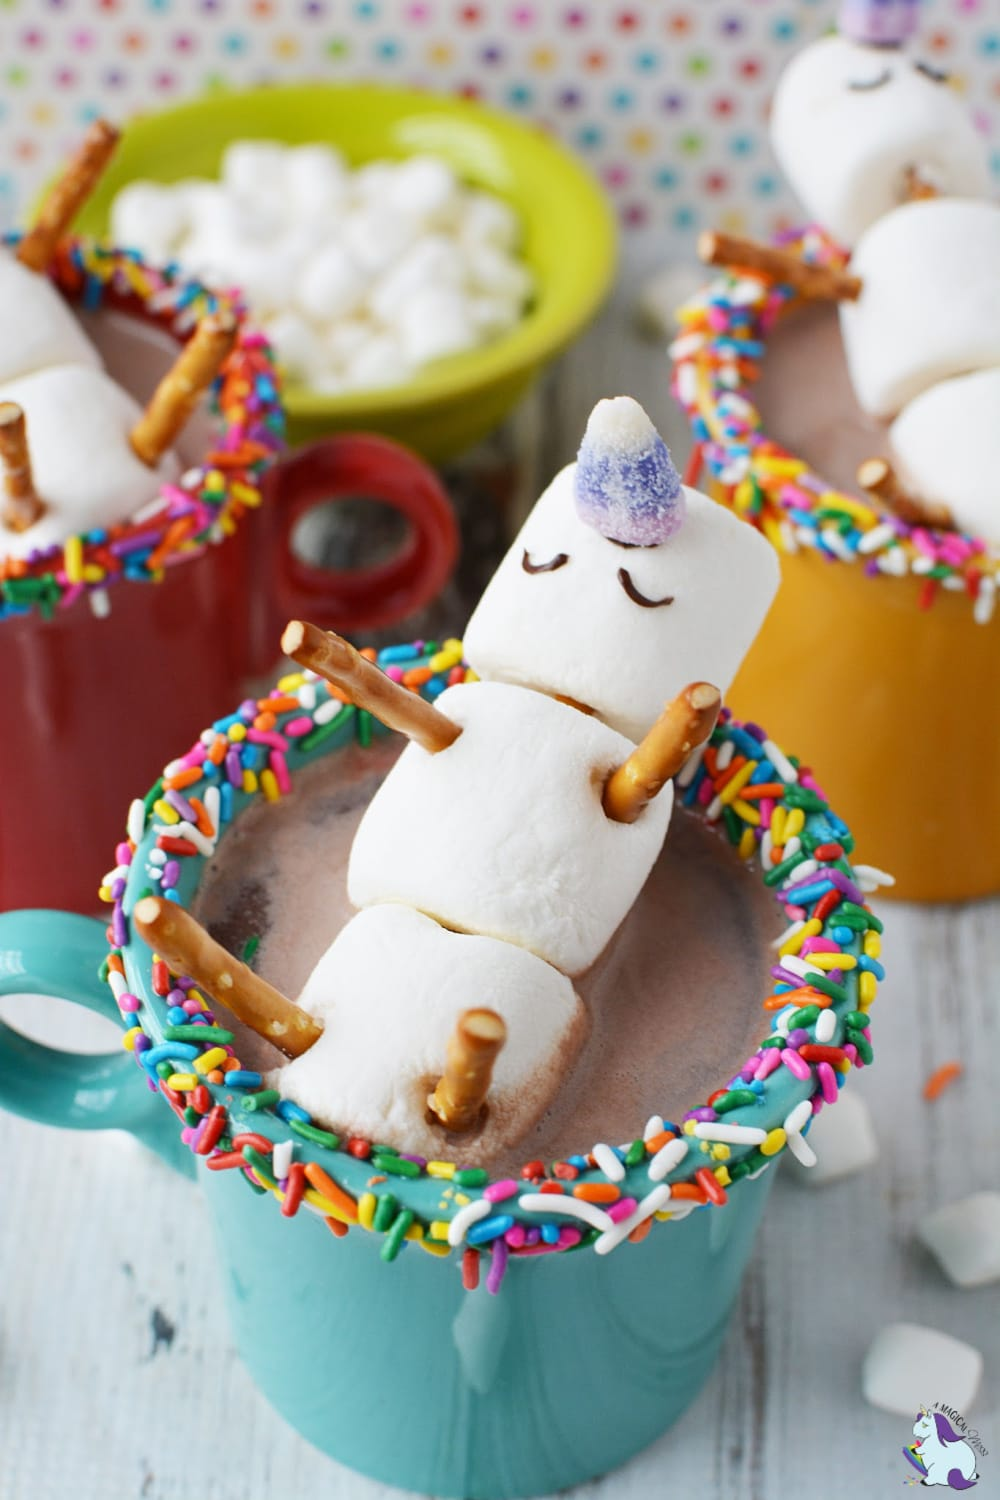 Melted Unicorn Hot Chocolate